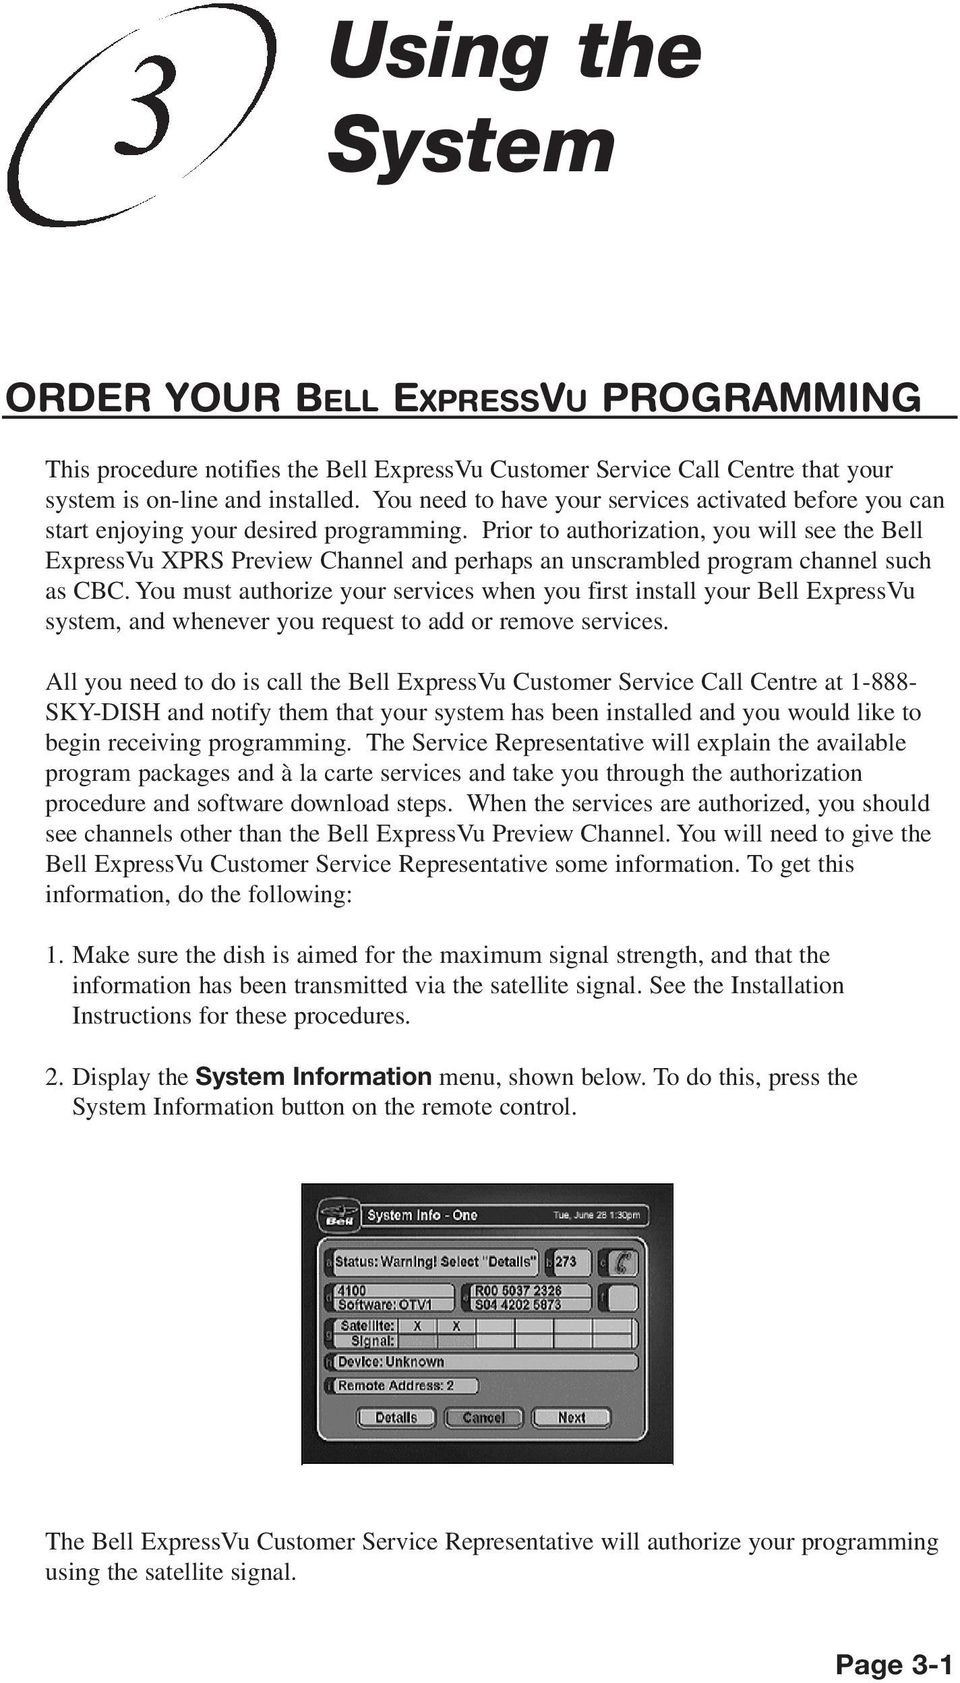 Prior to authorization, you will see the Bell ExpressVu XPRS Preview Channel and perhaps an unscrambled program channel such as CBC.